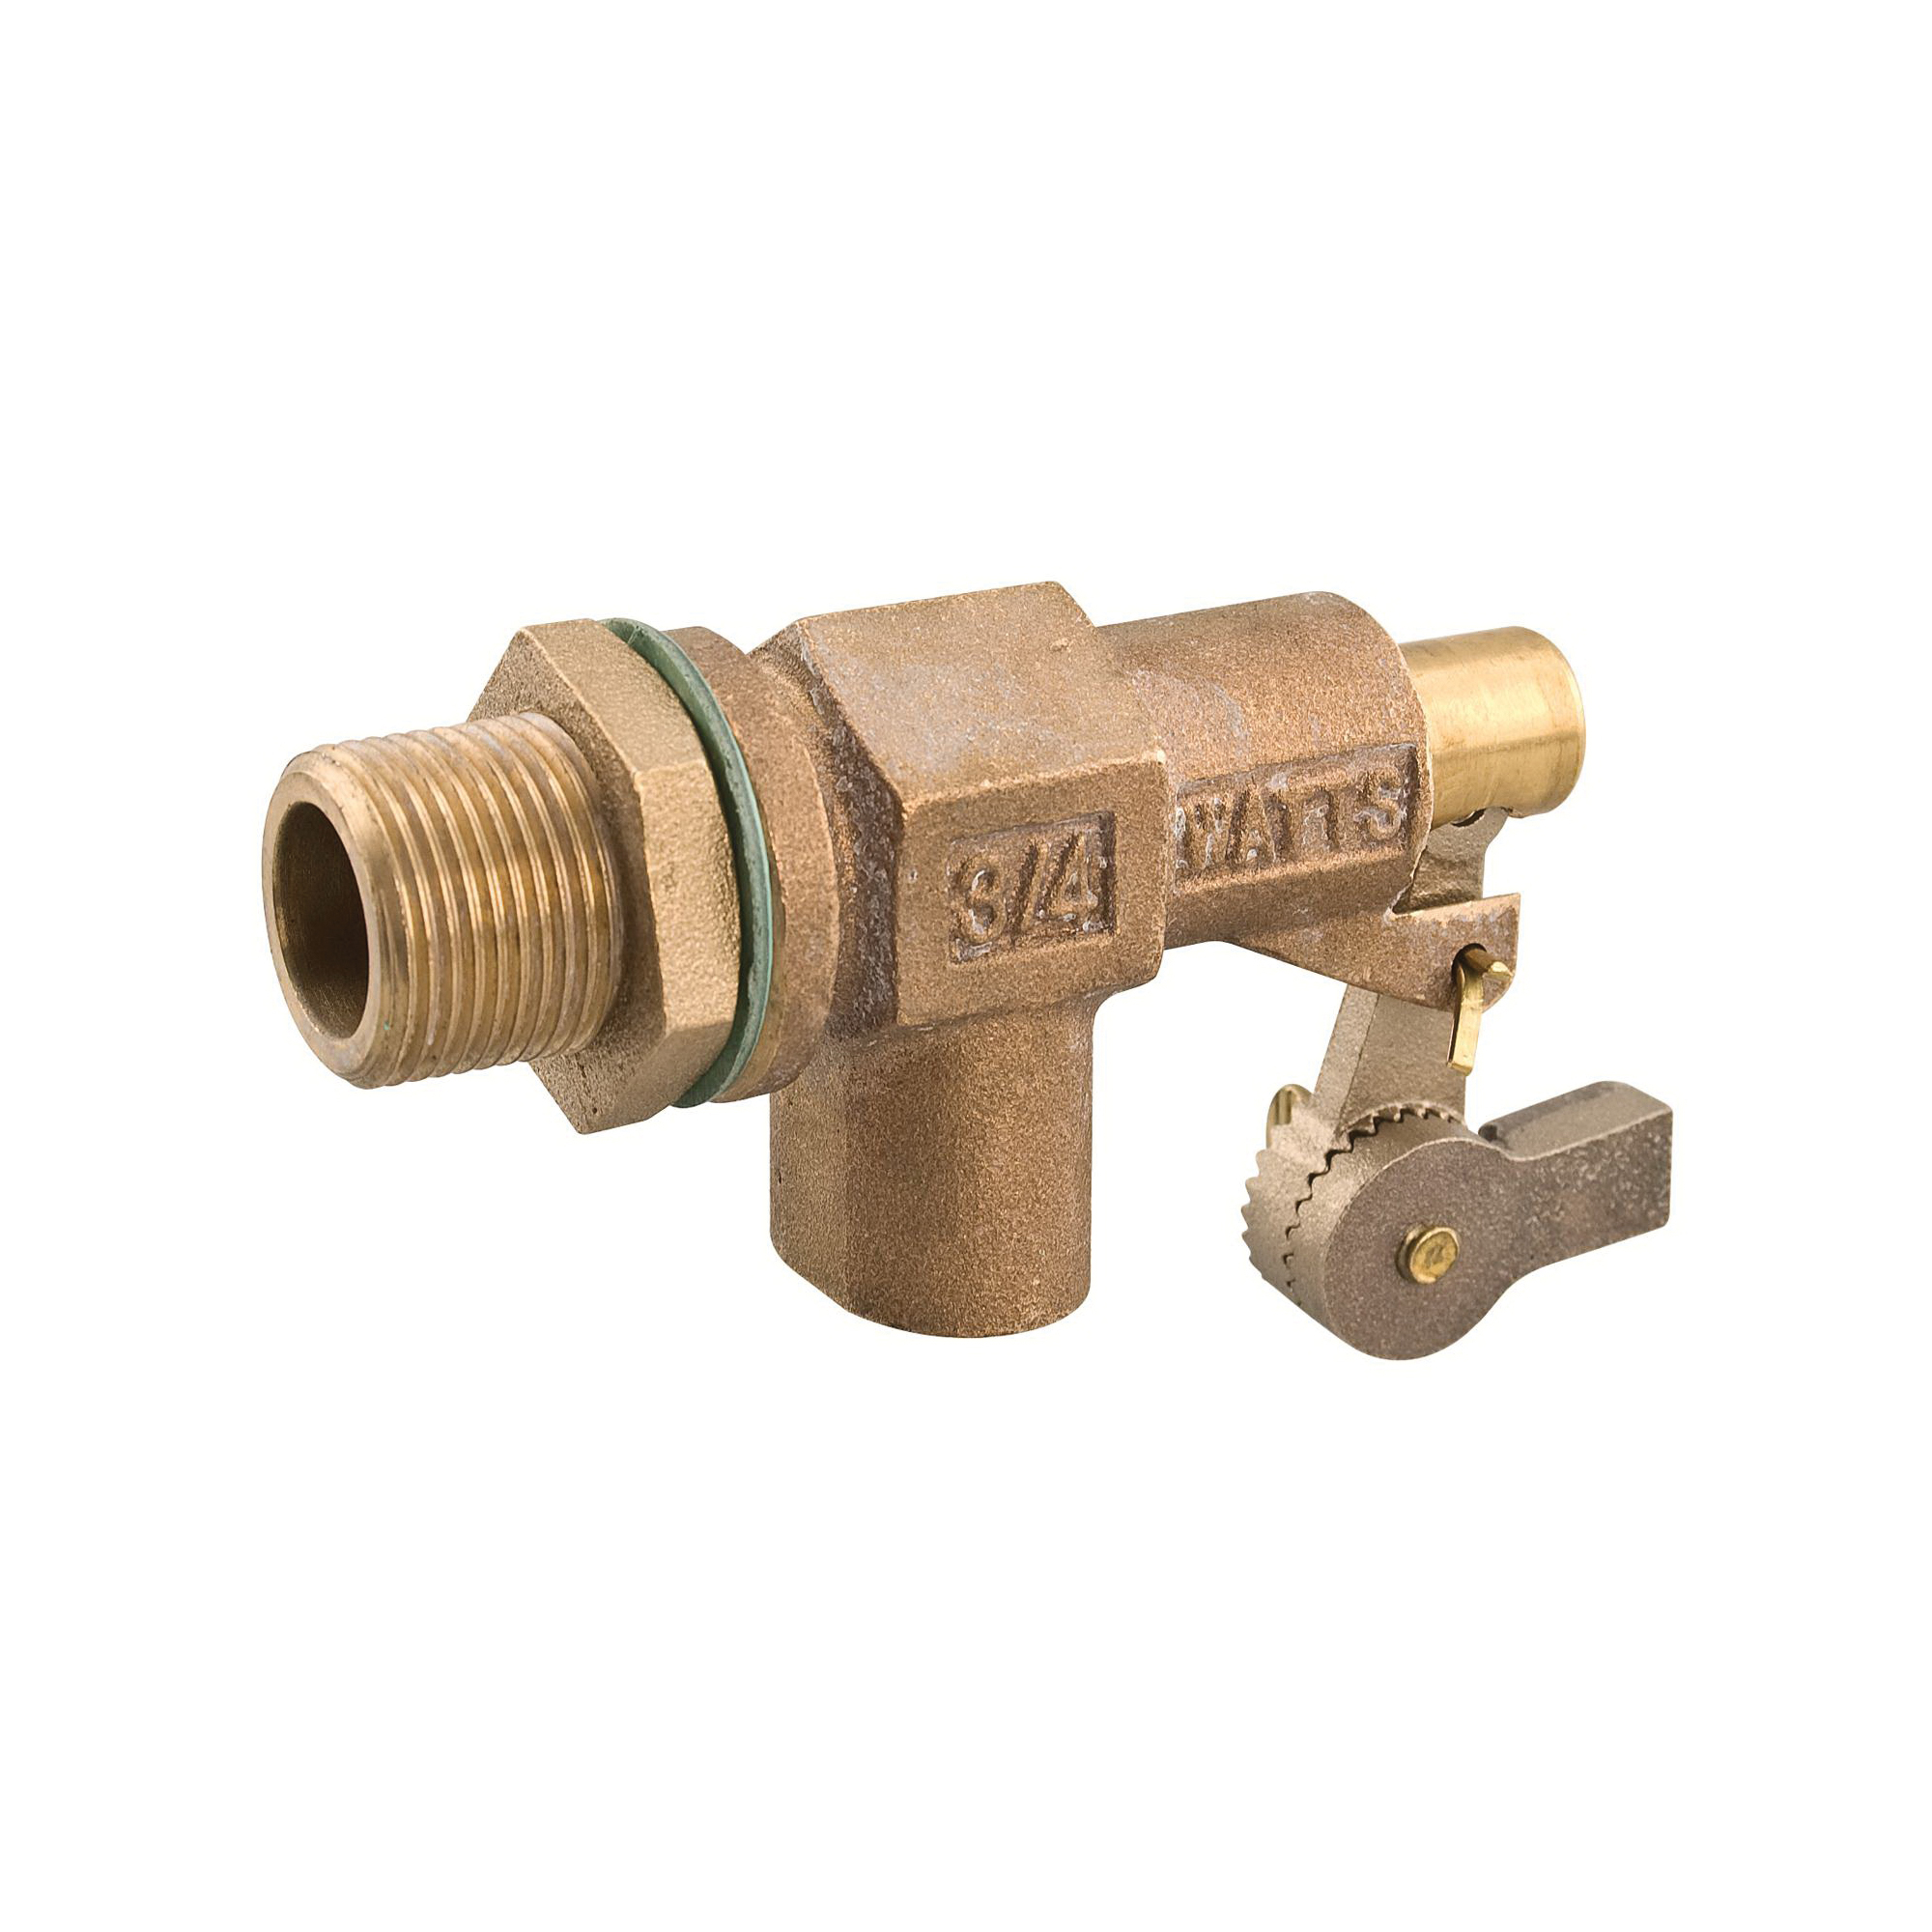 WATTS® 0780008 750 Heavy Duty Mechanical Float Valve, 3/4 in, Flange x MNPT, 40 to 60 gpm, 165 psi